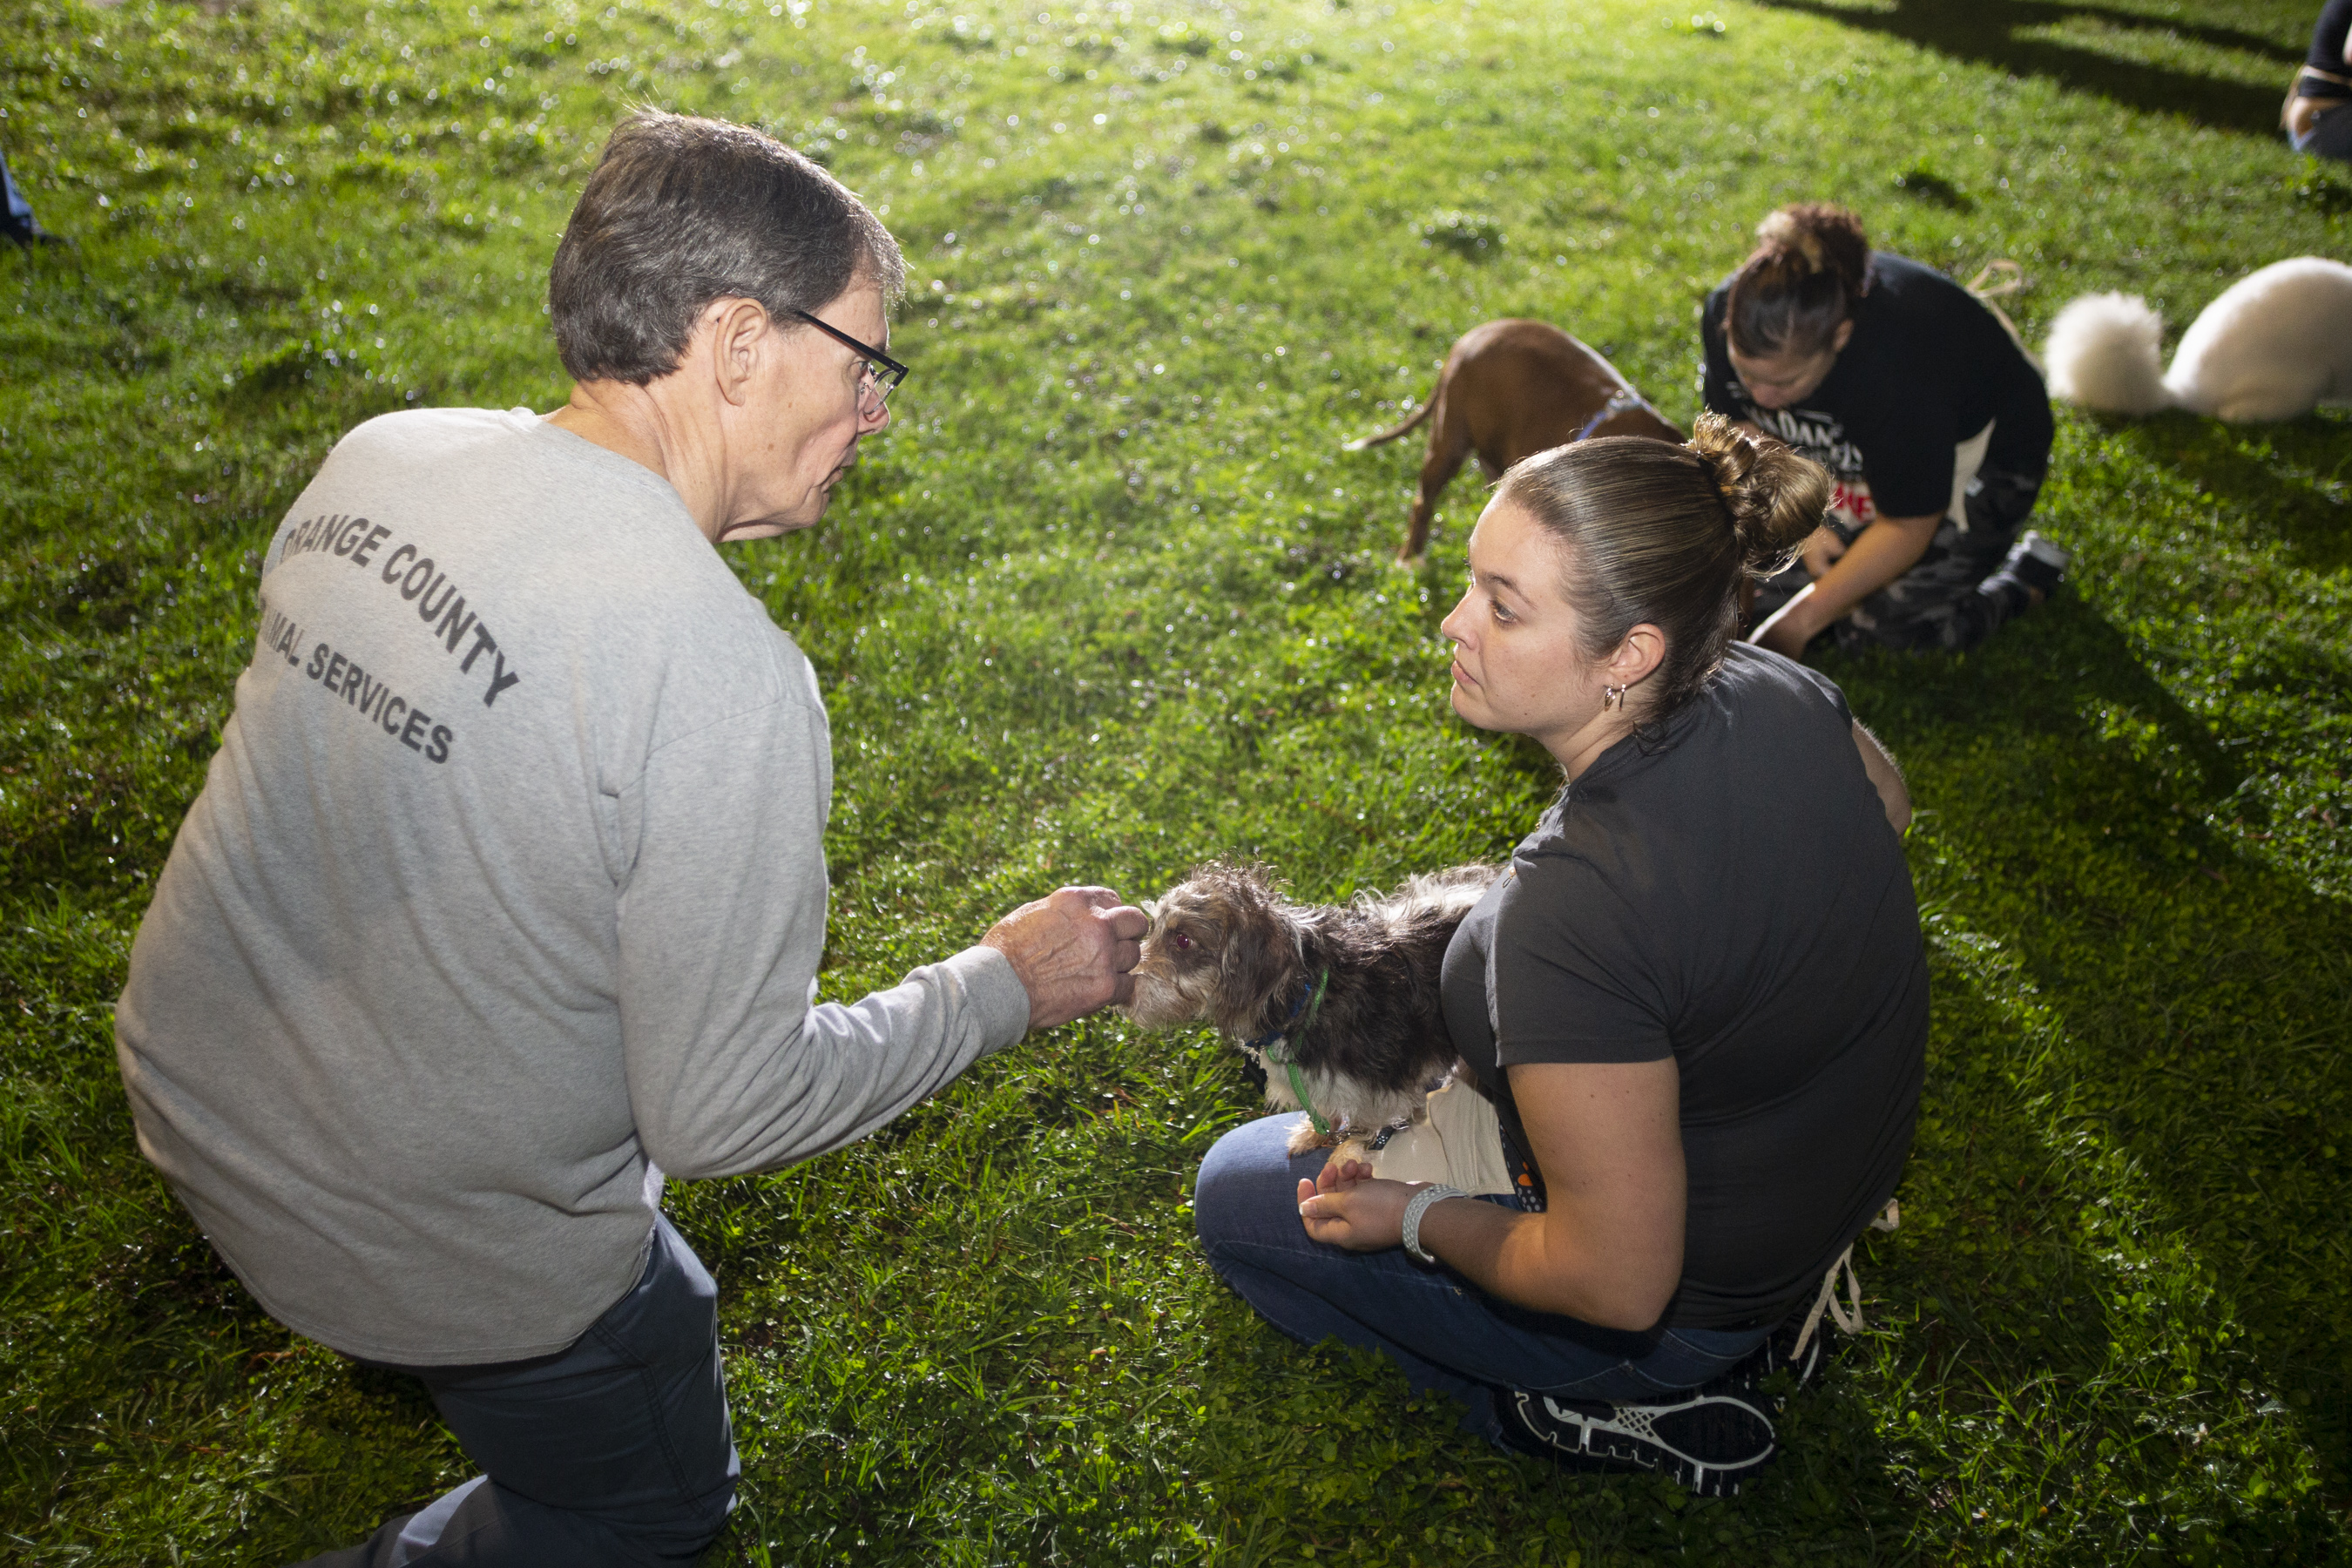 Two employees interacting with a dog and chatting, while a woman in the background plays with another dog. They're outside on a grassy patch.